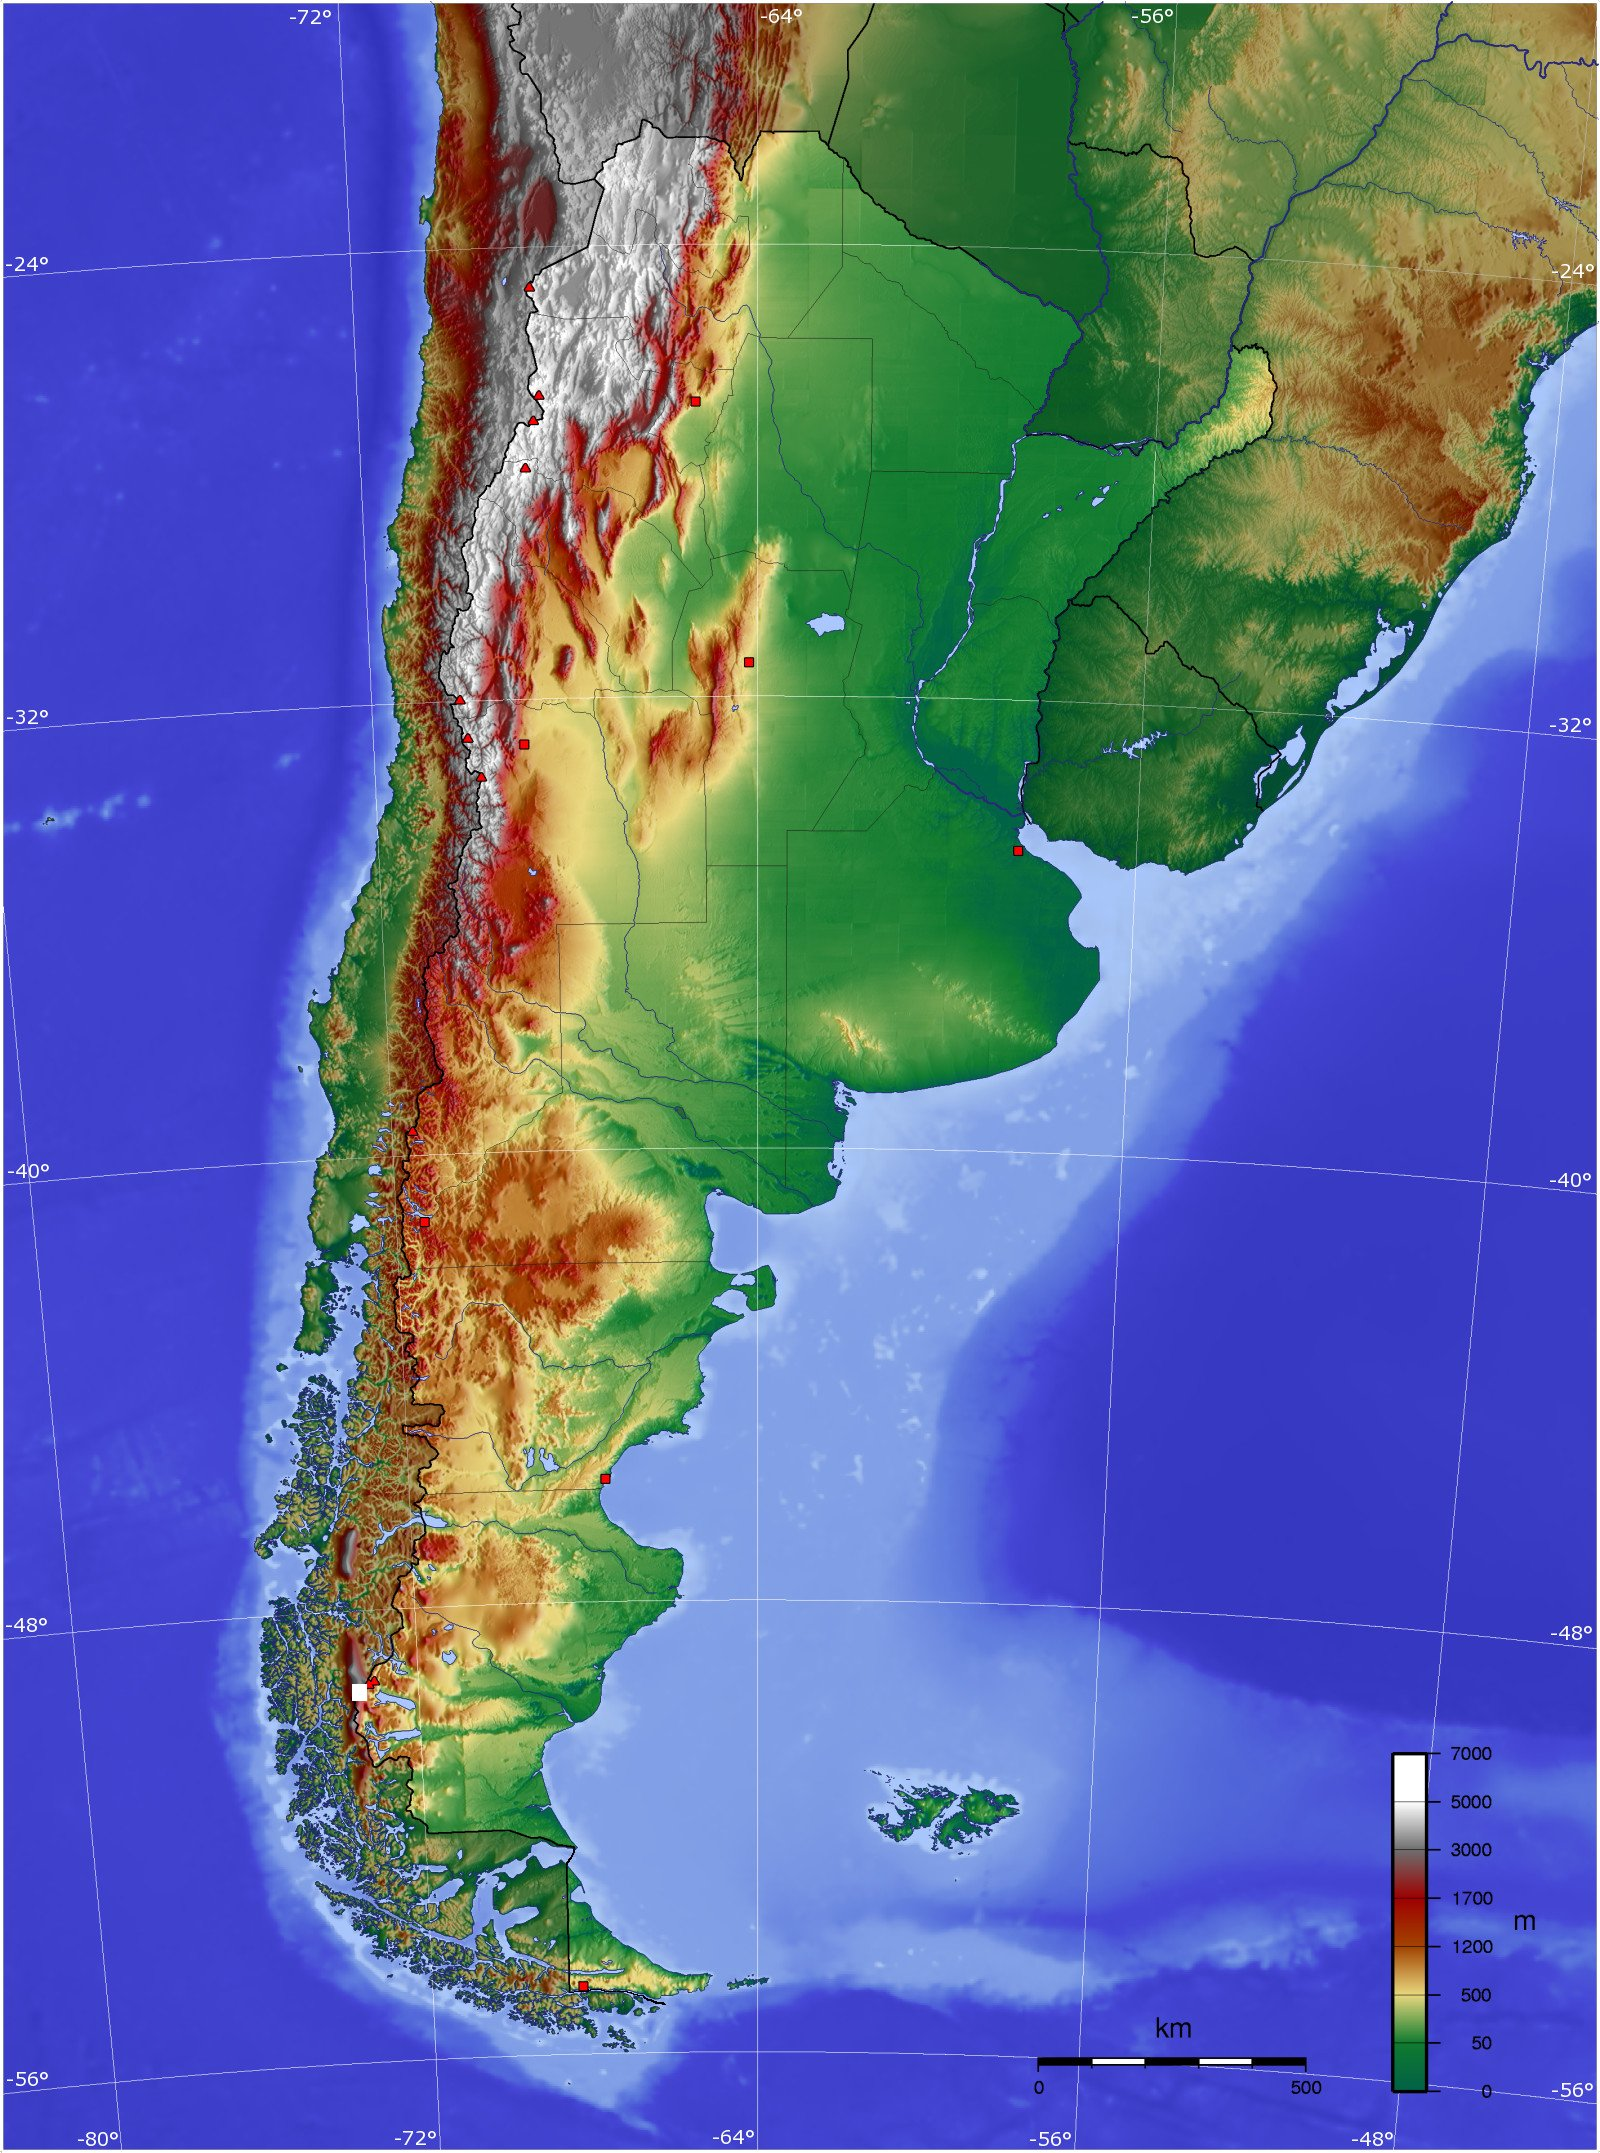 Geography of Argentina - Wikipedia on map of belize, map of western hemisphere, map of ecuador, map of nicaragua, map of bahamas, map of united states, map of honduras, map of caribbean, map of middle east, map of costa rica, map of guyana, map of argentina, map of antarctica, map of venezuela, map of guatemala, map of paraguay, map of aruba, map of bolivia, map of dominican republic, map of the americas,